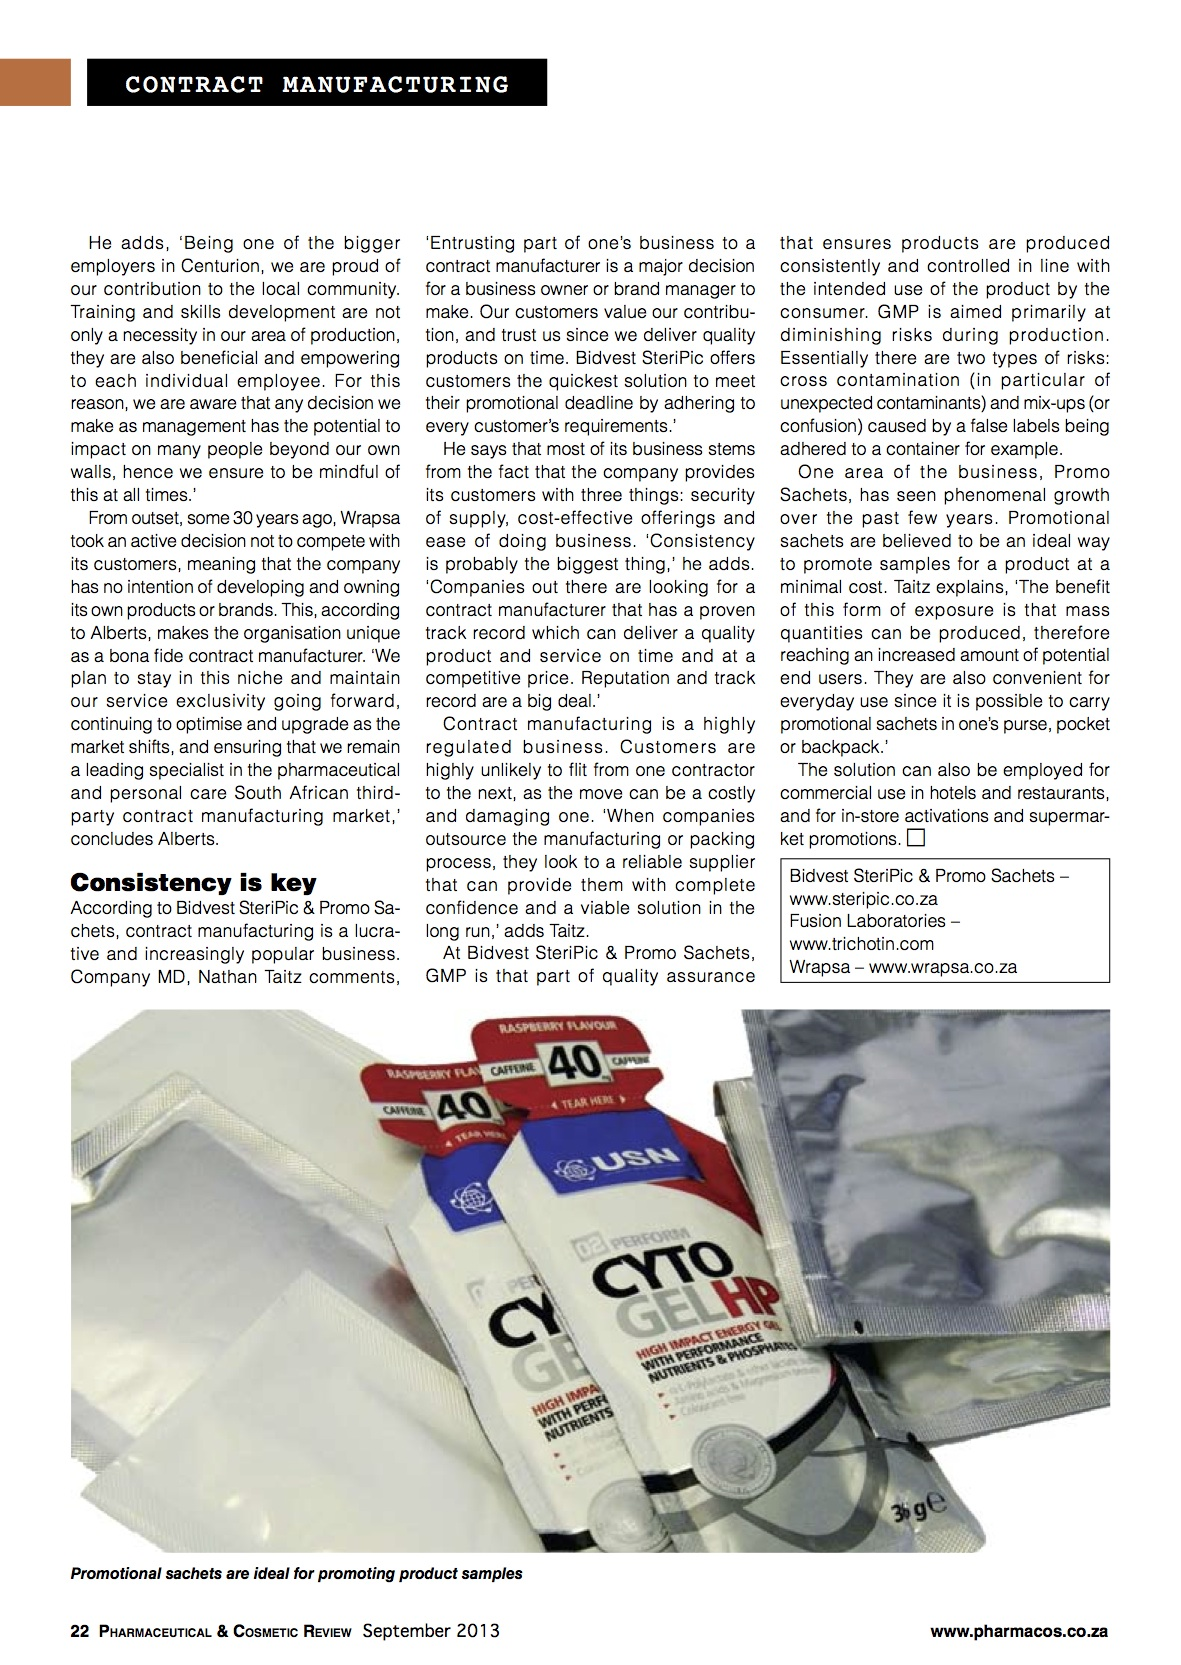 Fusion-Intergrated-Services-Article-pg-31